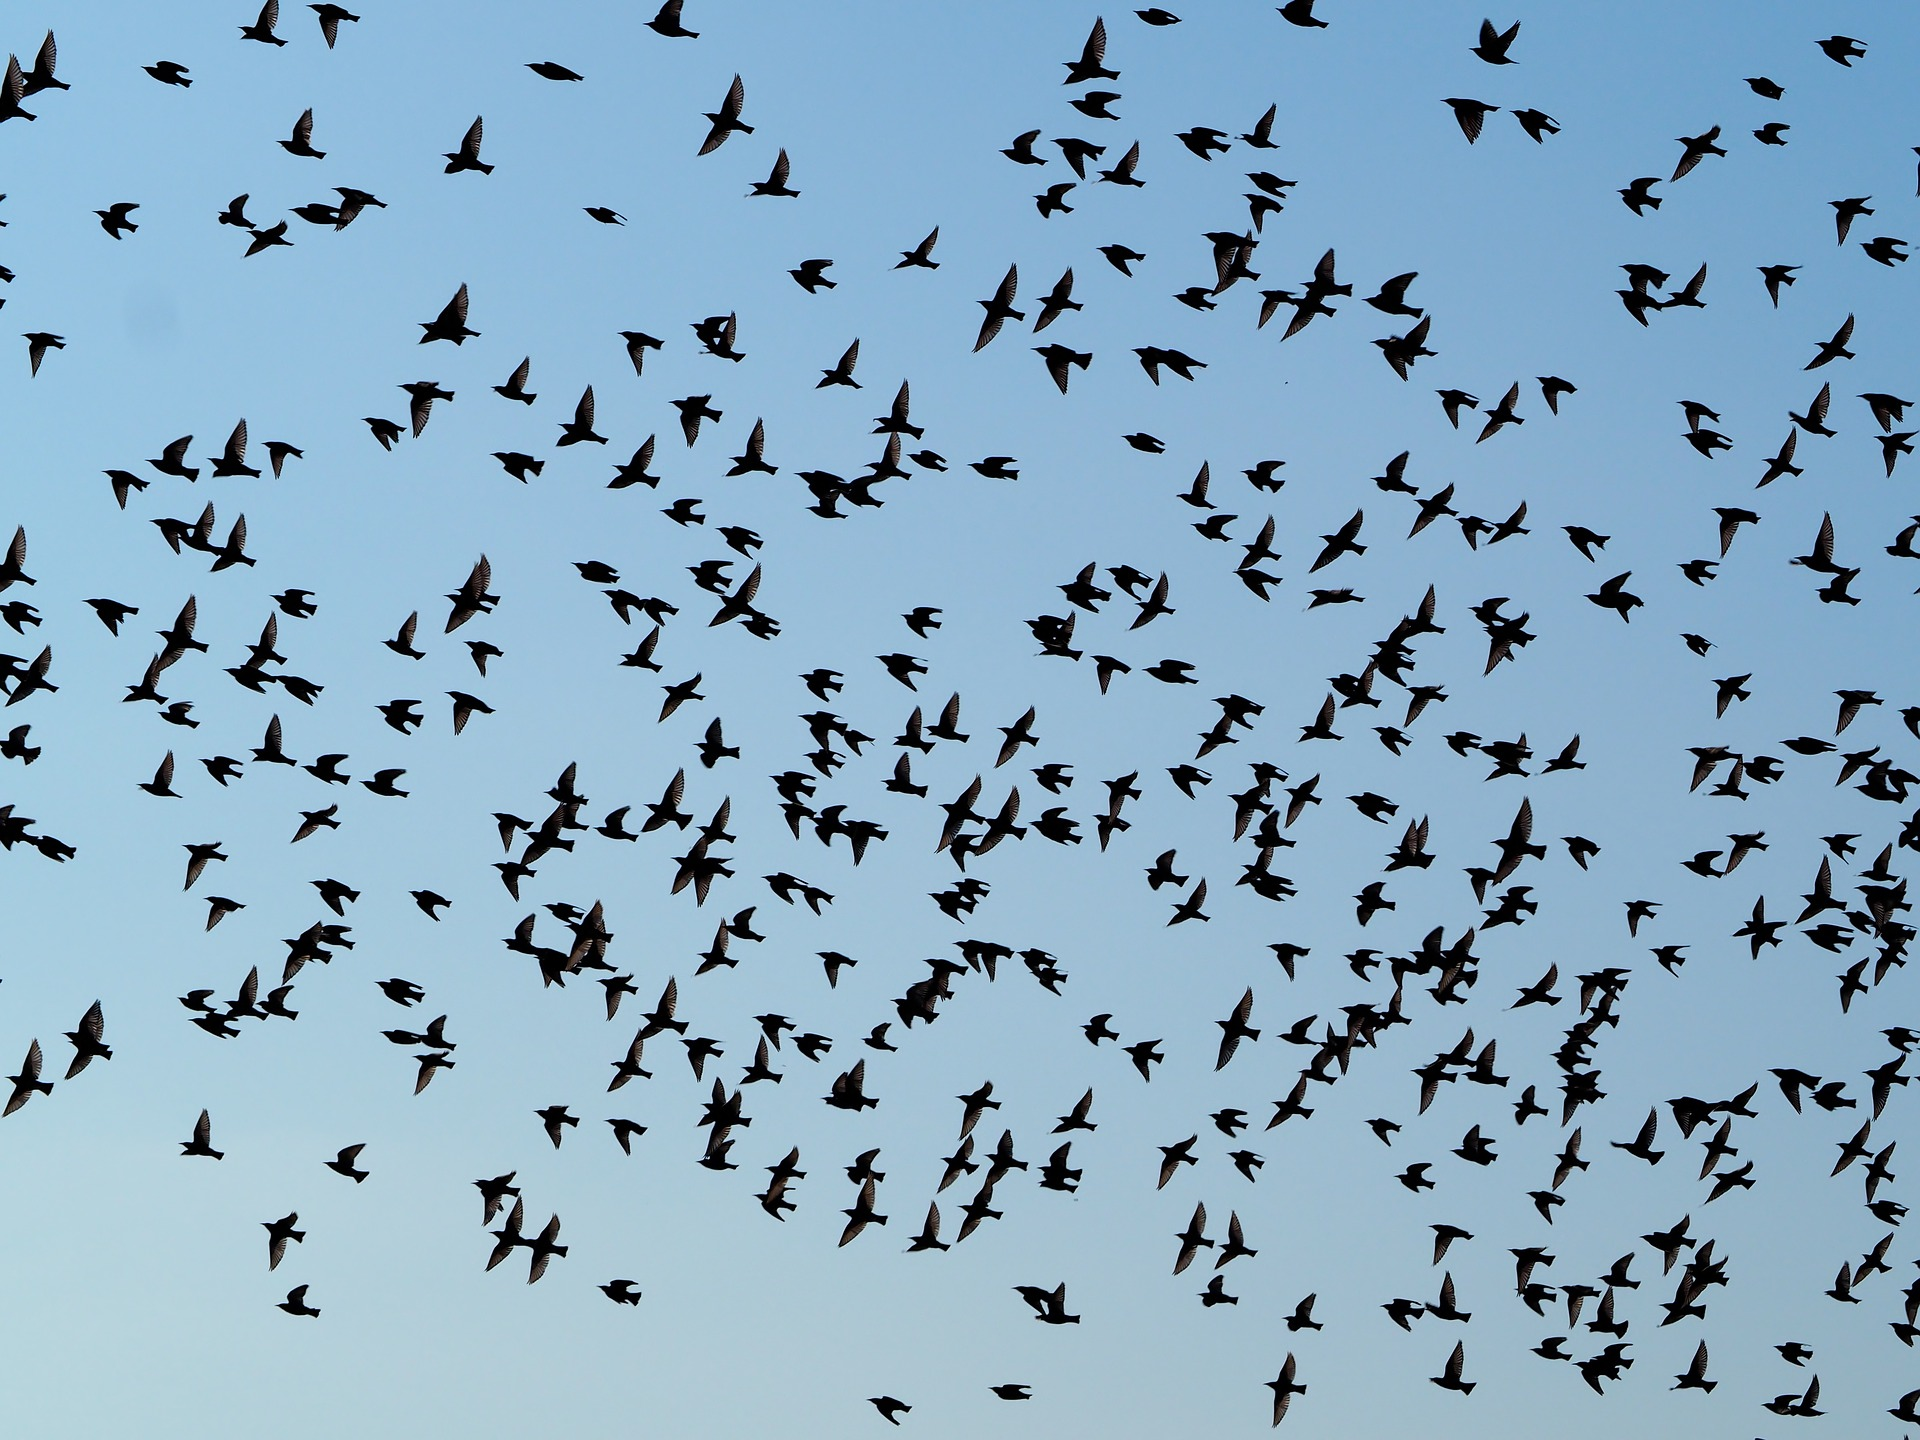 Managing organisations in the same ways birds manage to fly together